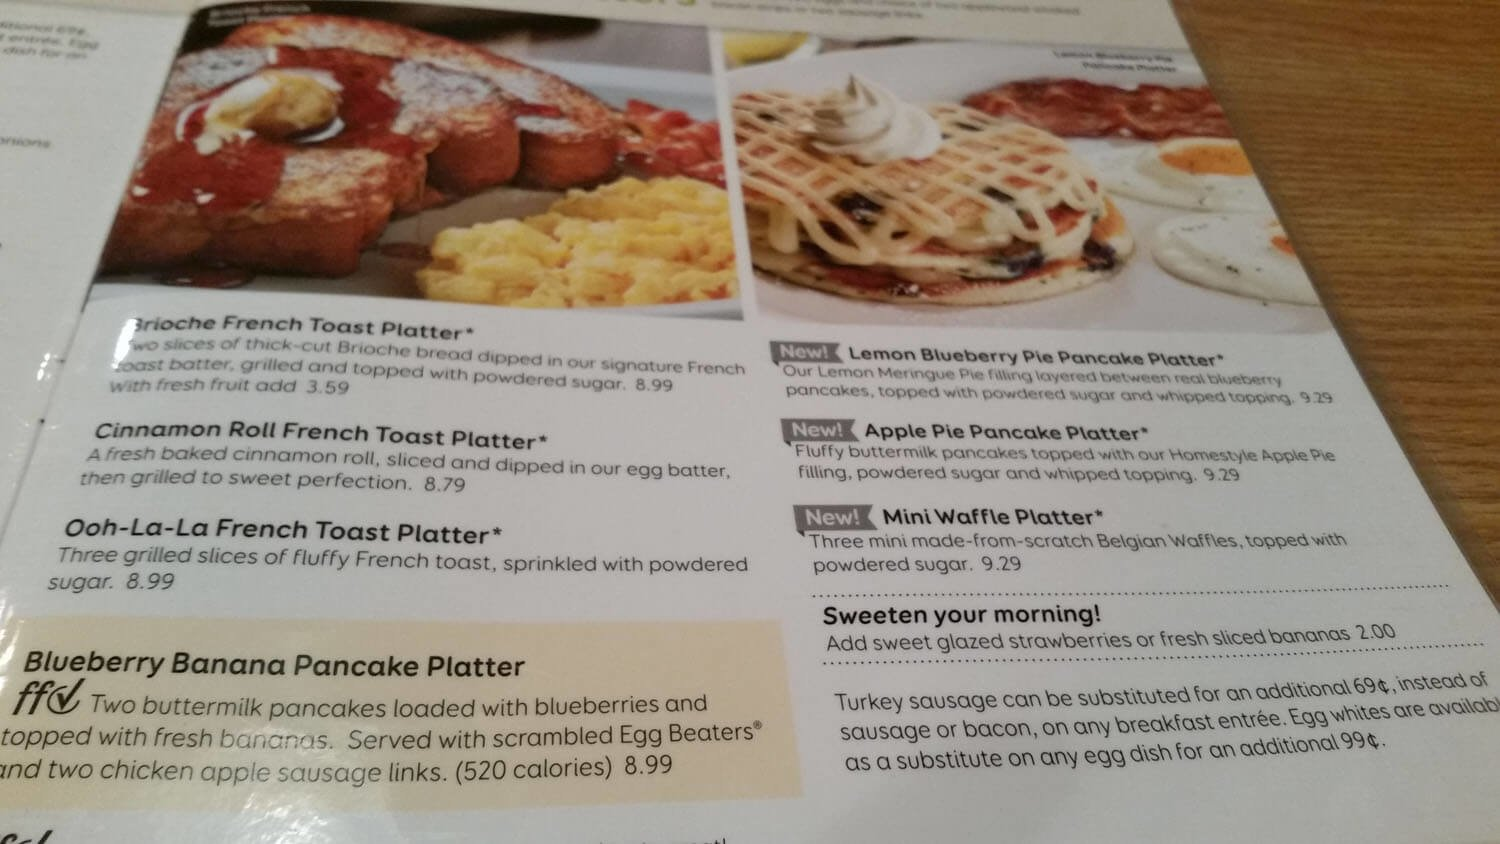 Perkins Menu Prices